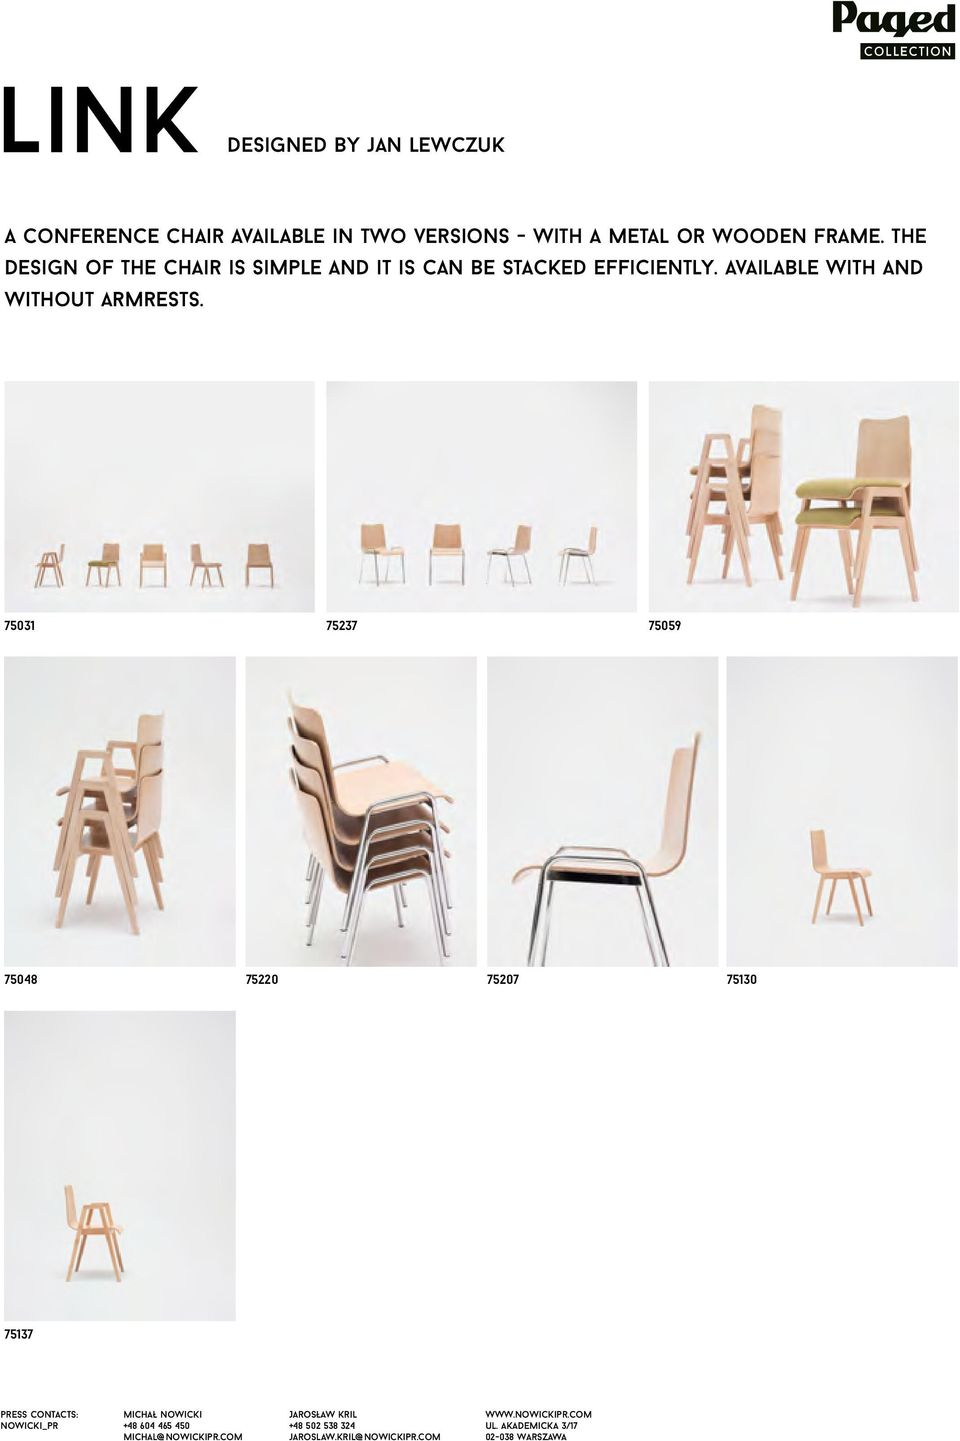 the design of the chair is simple and it is can be stacked